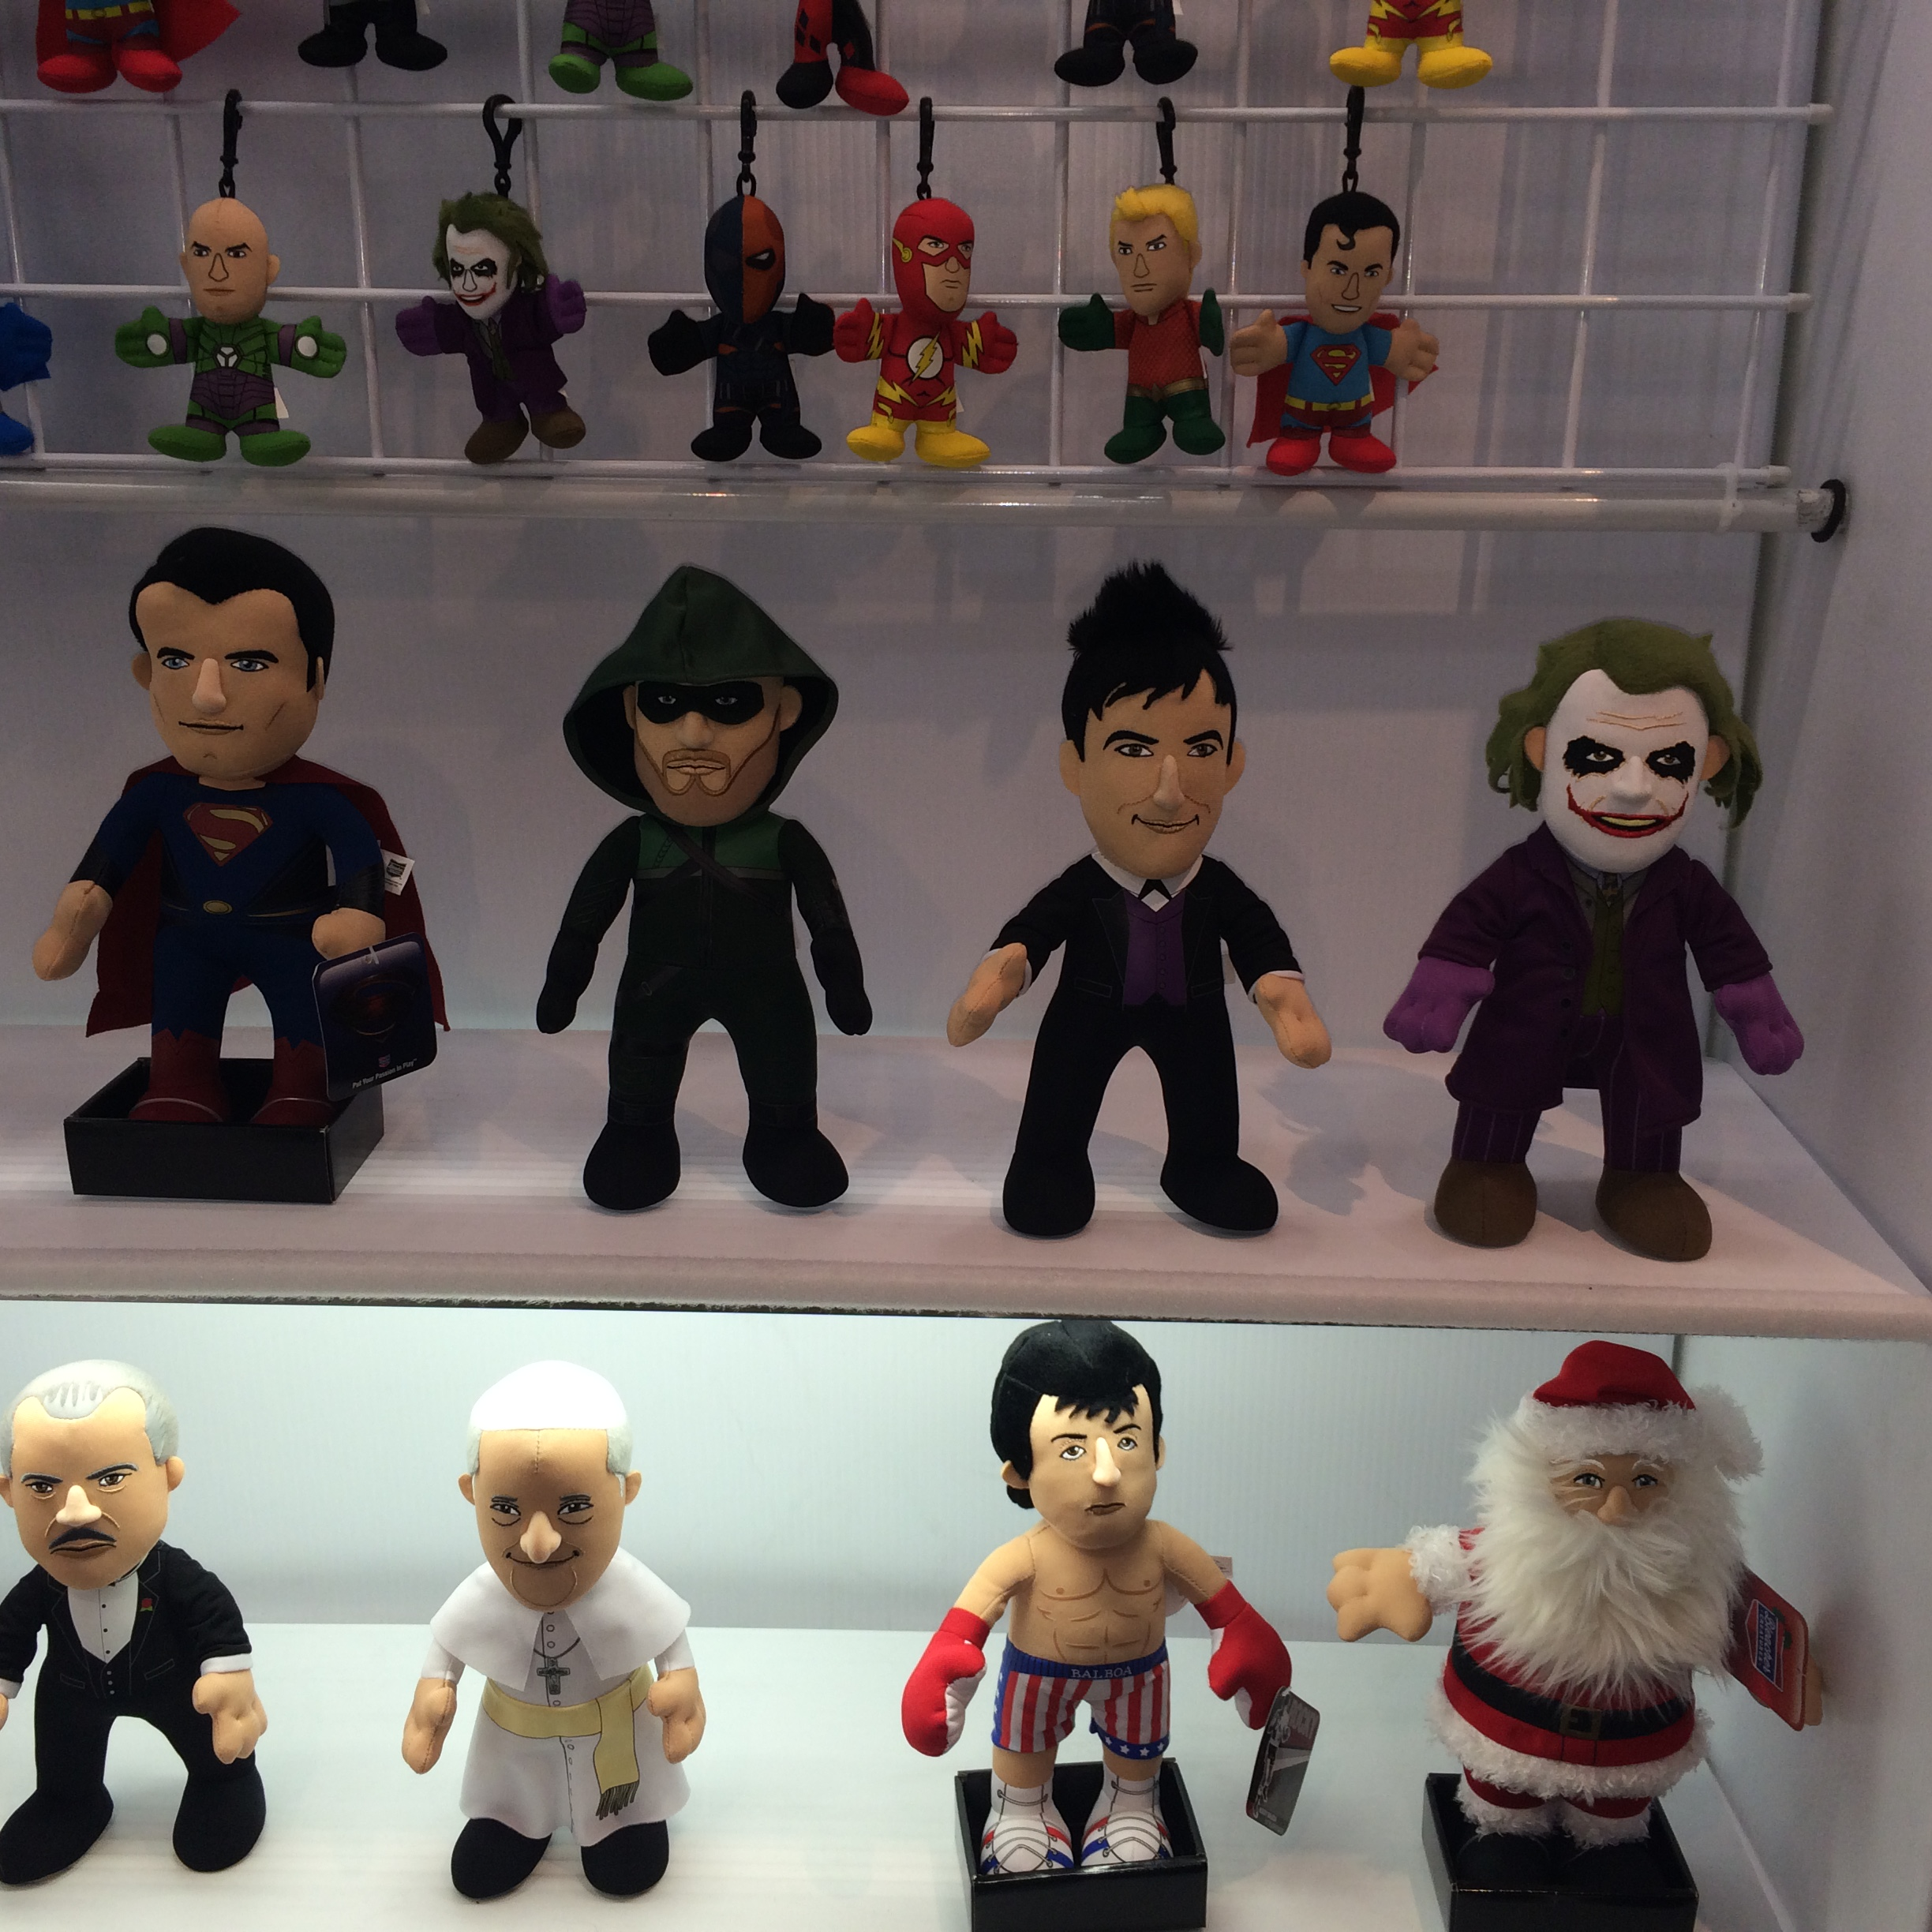 Man of Steel! Arrow! Gotham Penguin! Ledger Joker! Little guys! Vito Corleone next to the Pope!